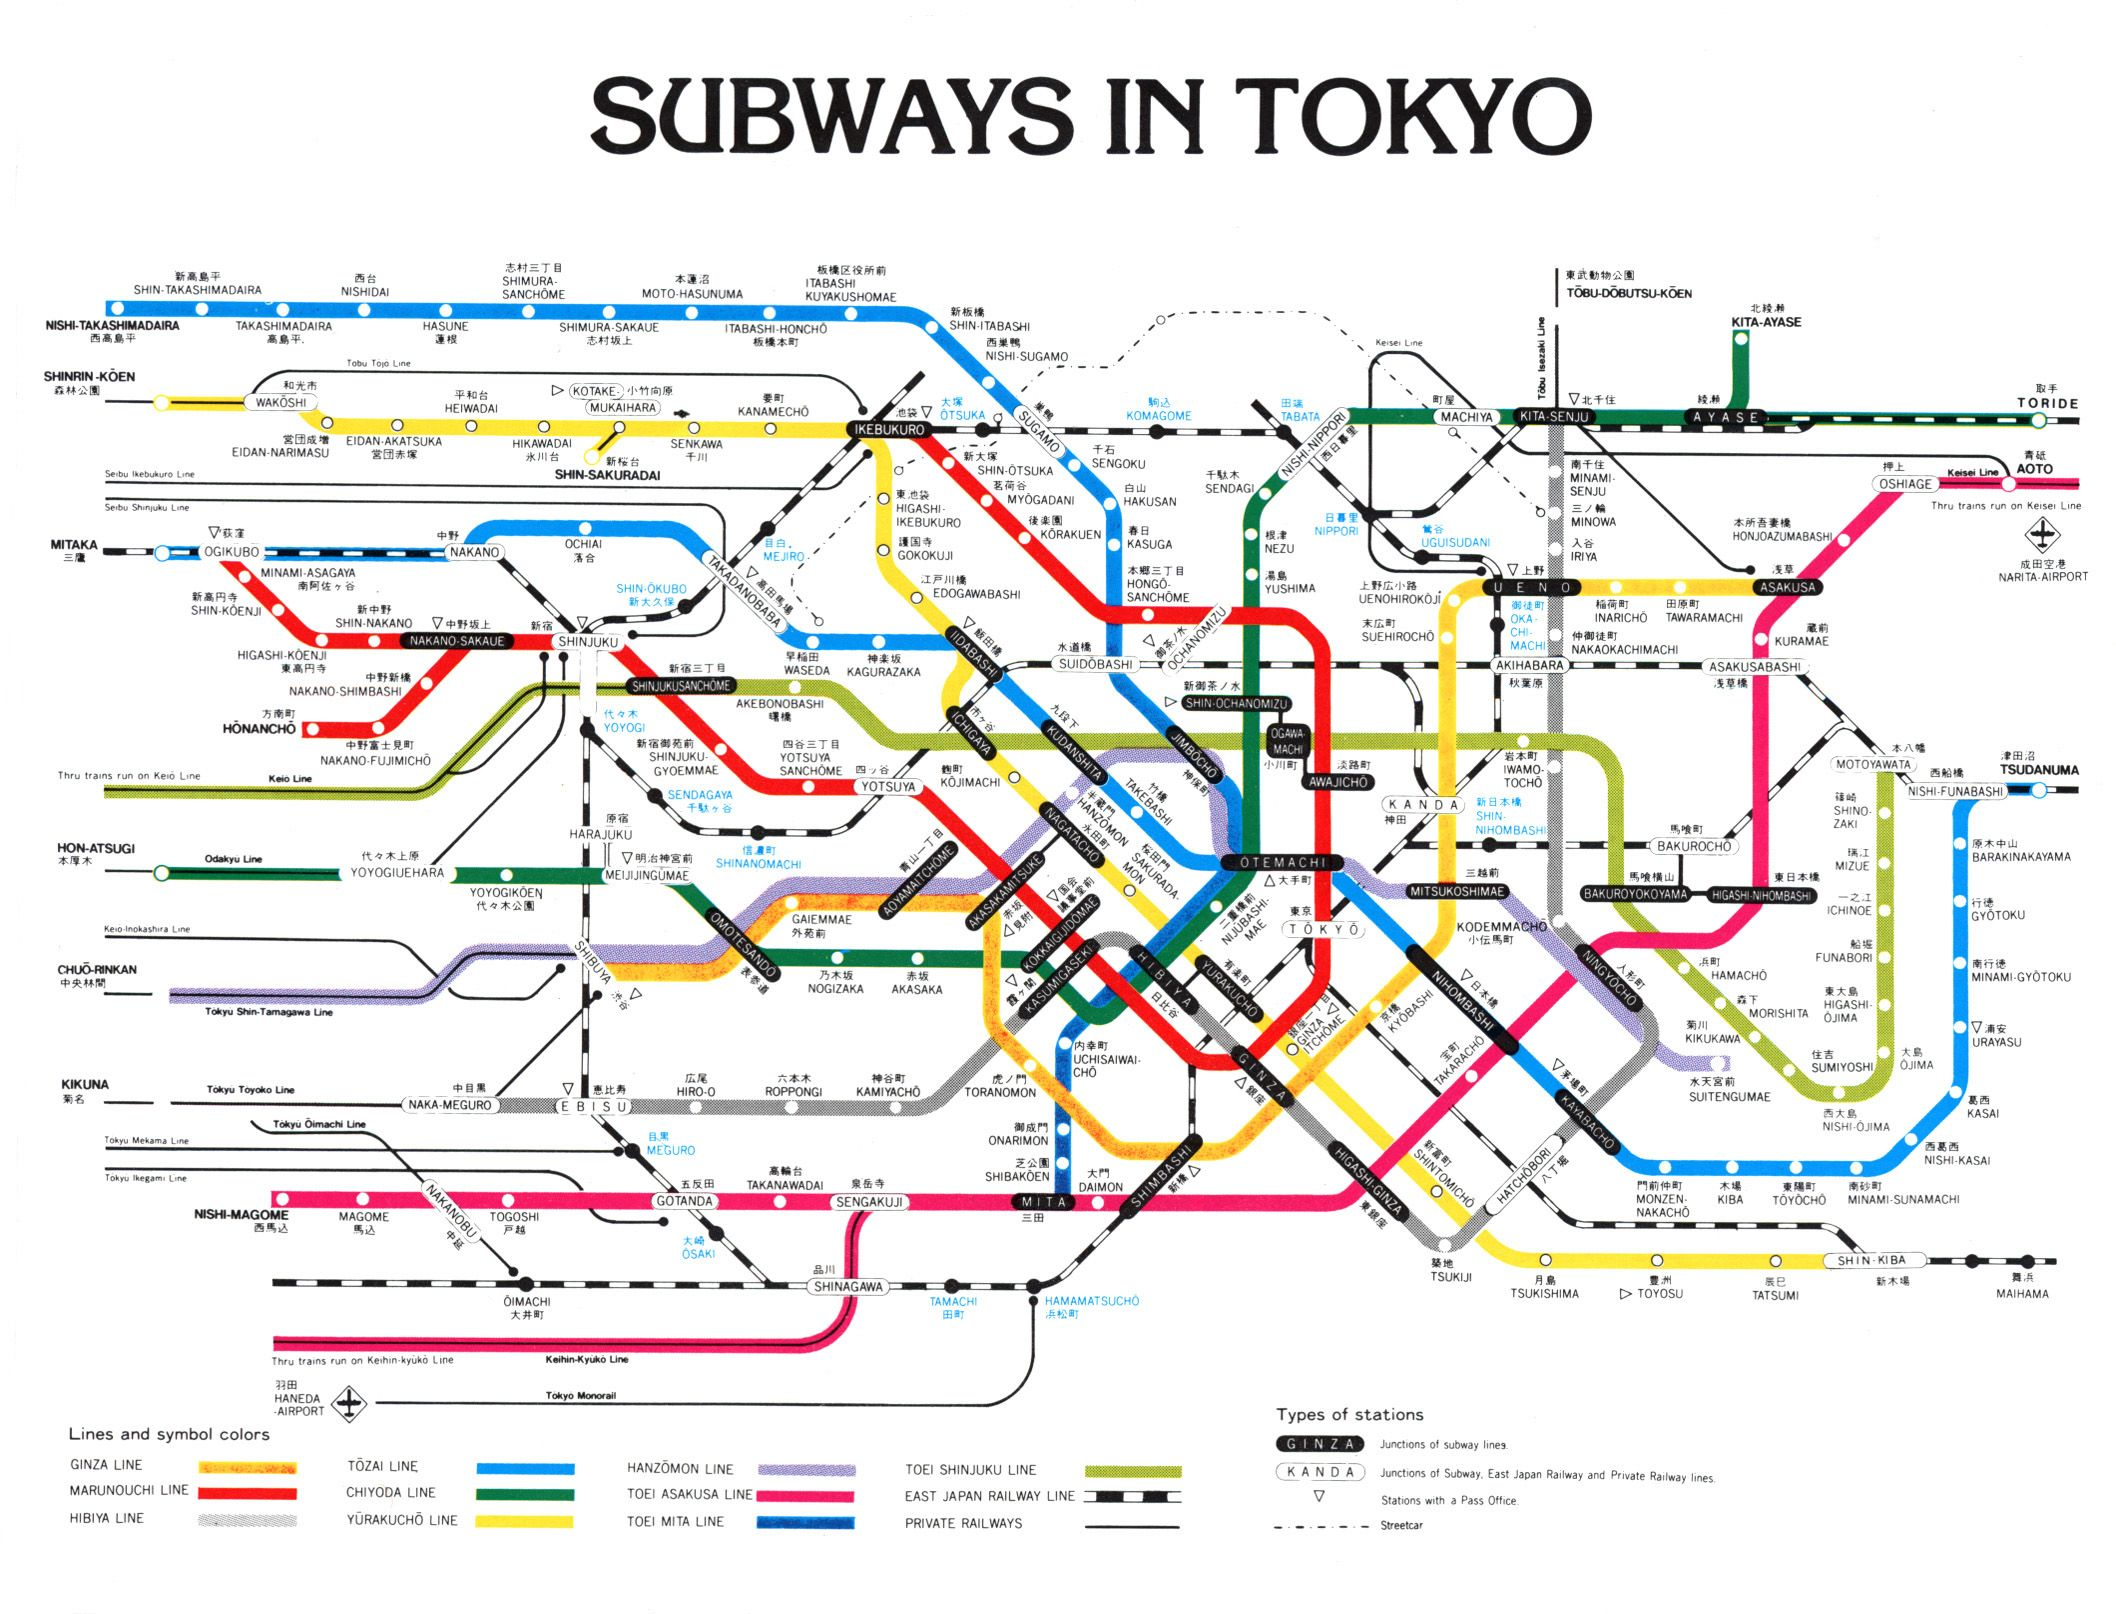 Tokyo Subway Map Tokyo Mappery Maps Pinterest Subway Map - Japan underground map